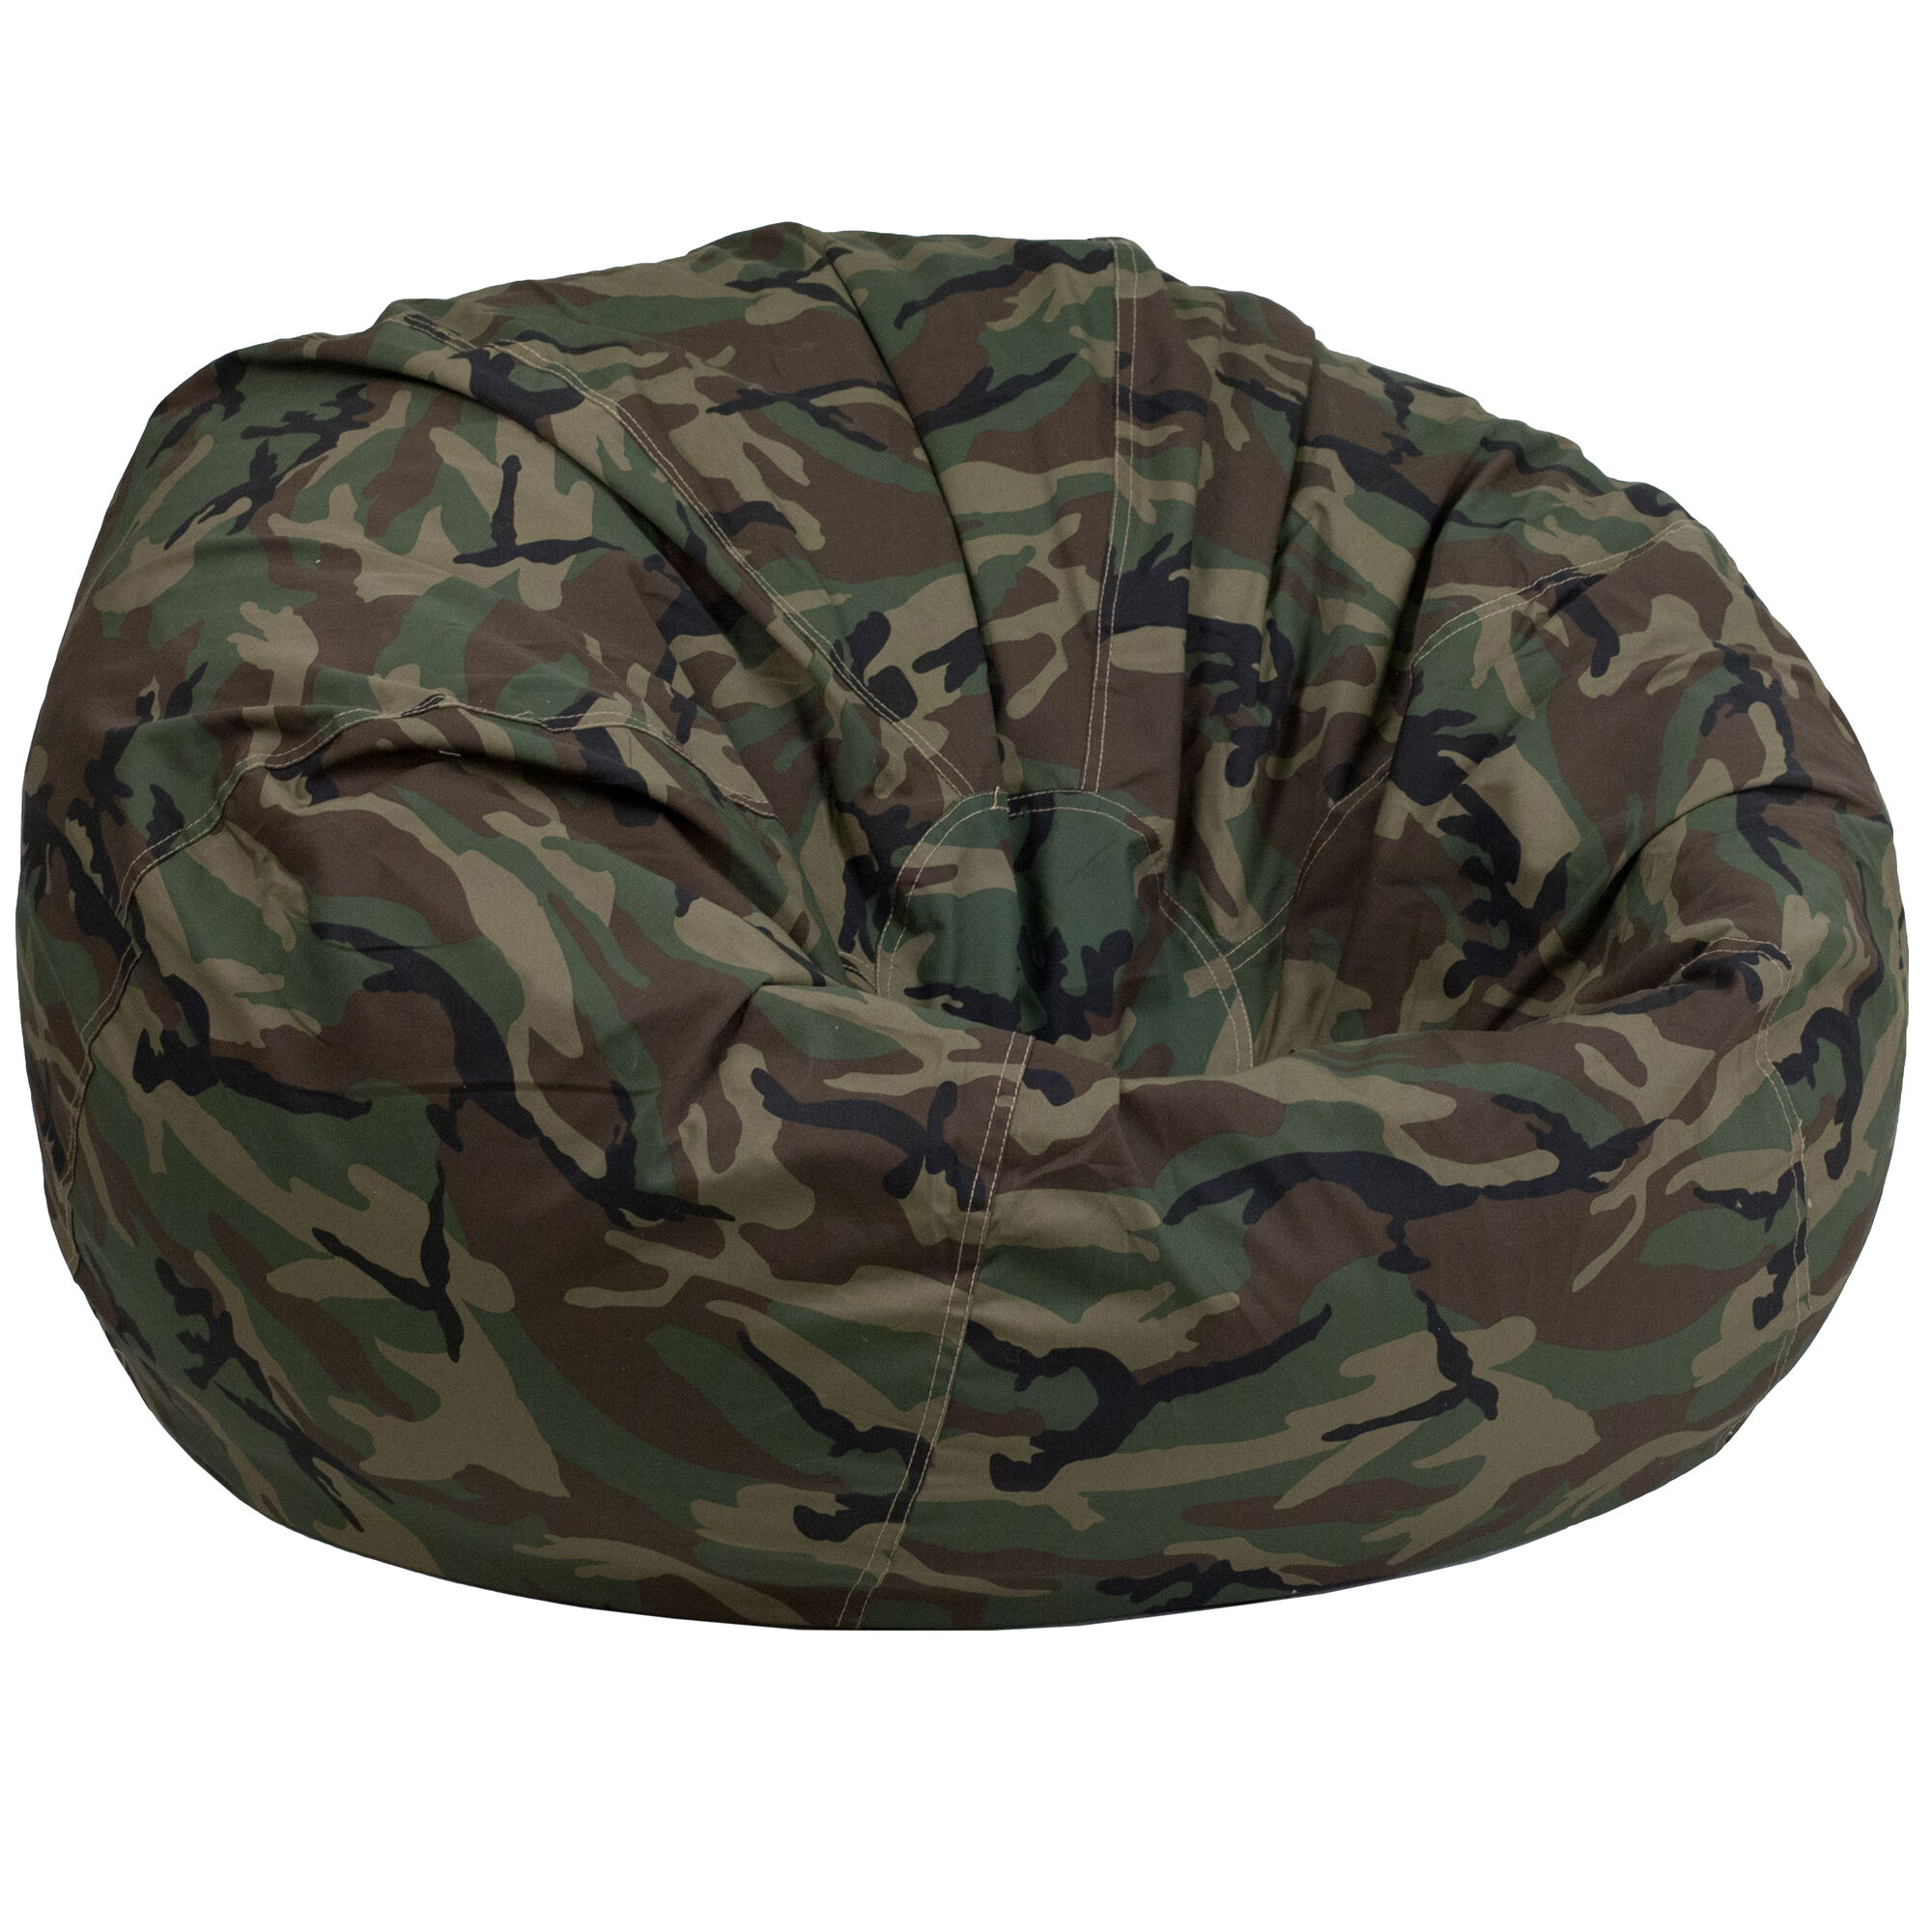 Images Our Oversized Camouflage Kids Bean Bag Chair